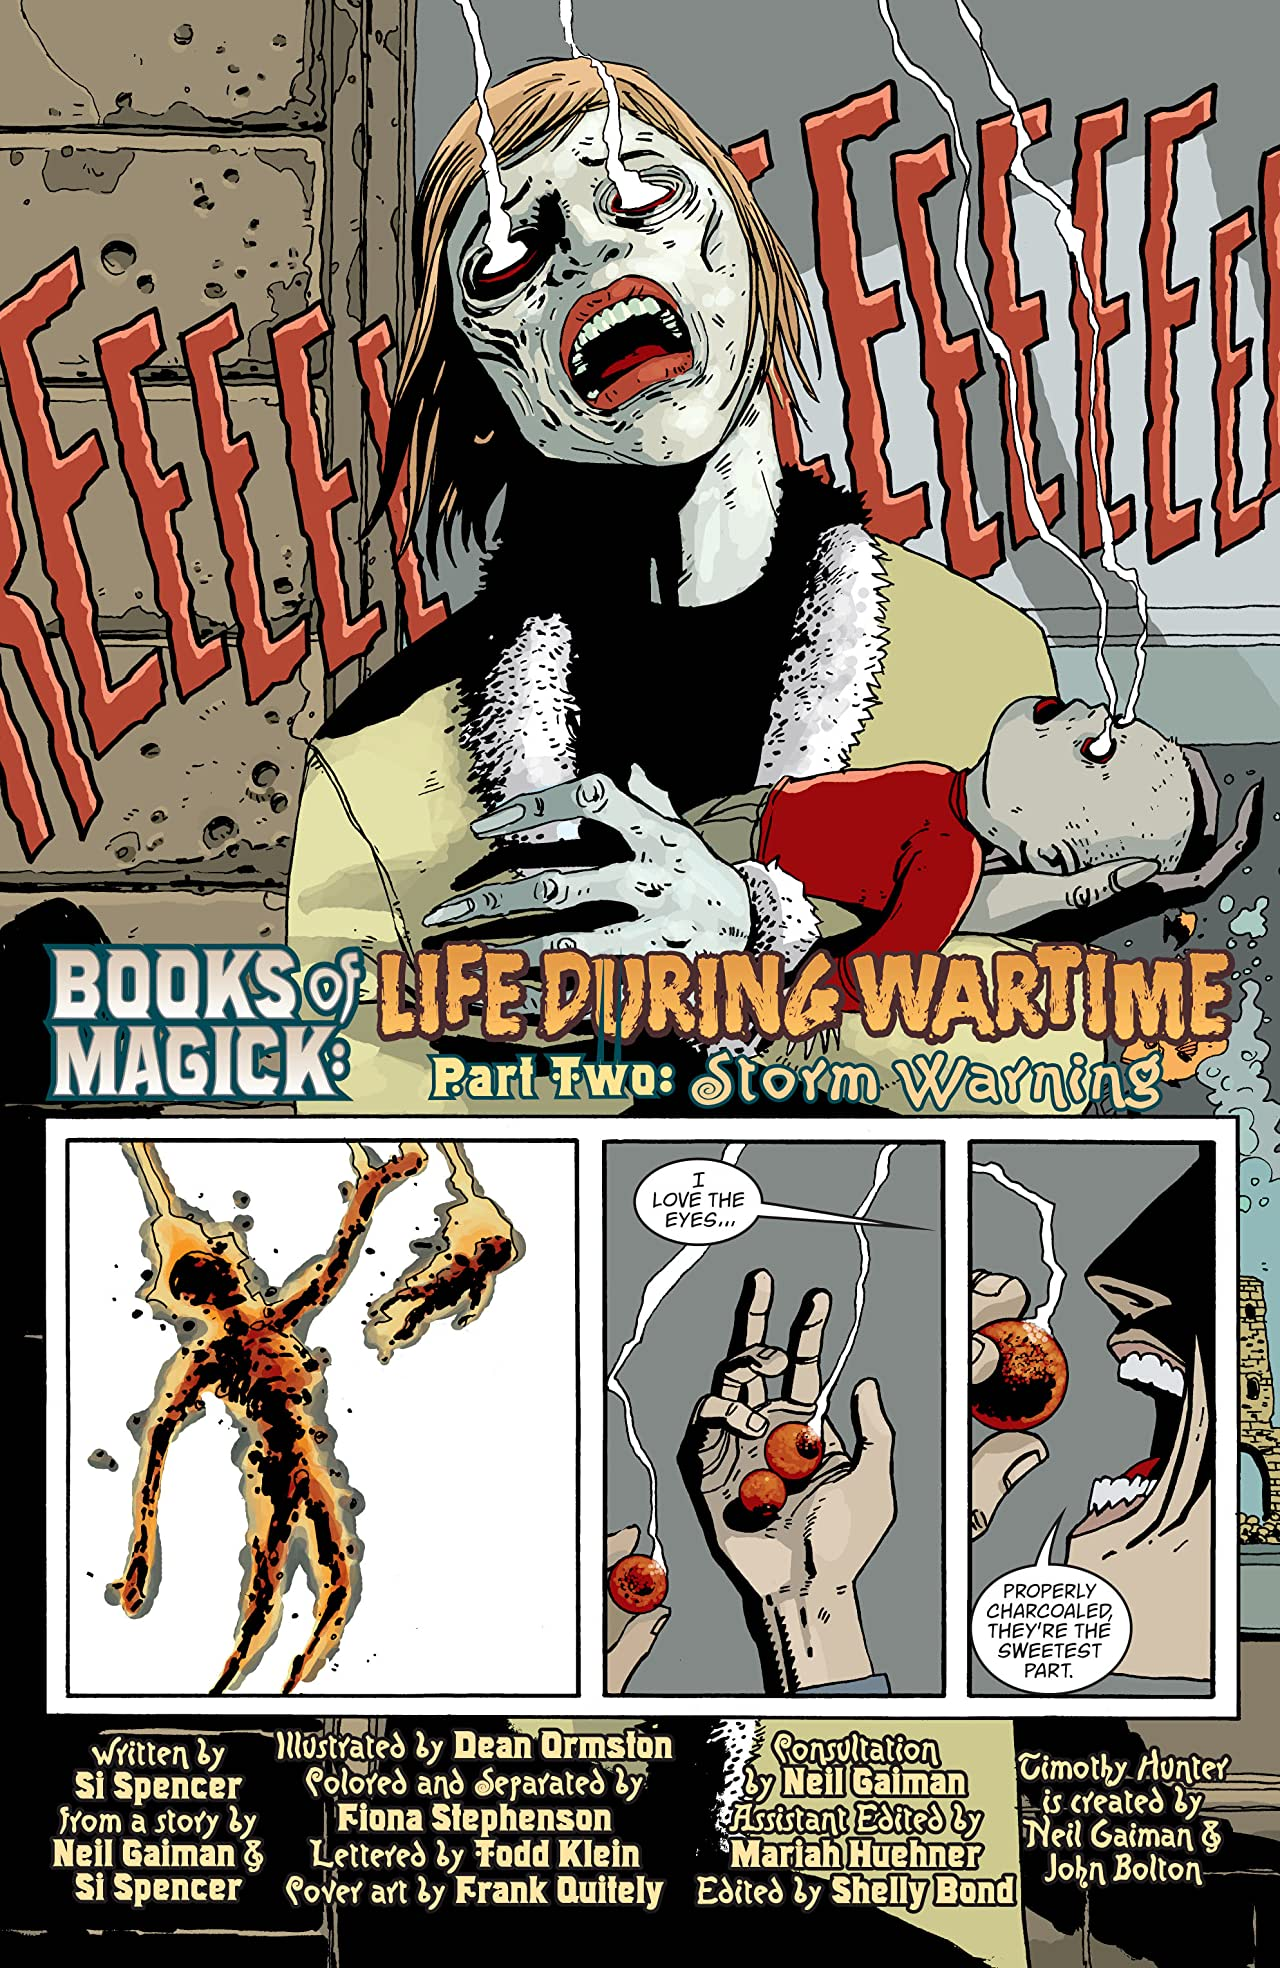 Books of Magick: Life During Wartime (2004-2005) #2